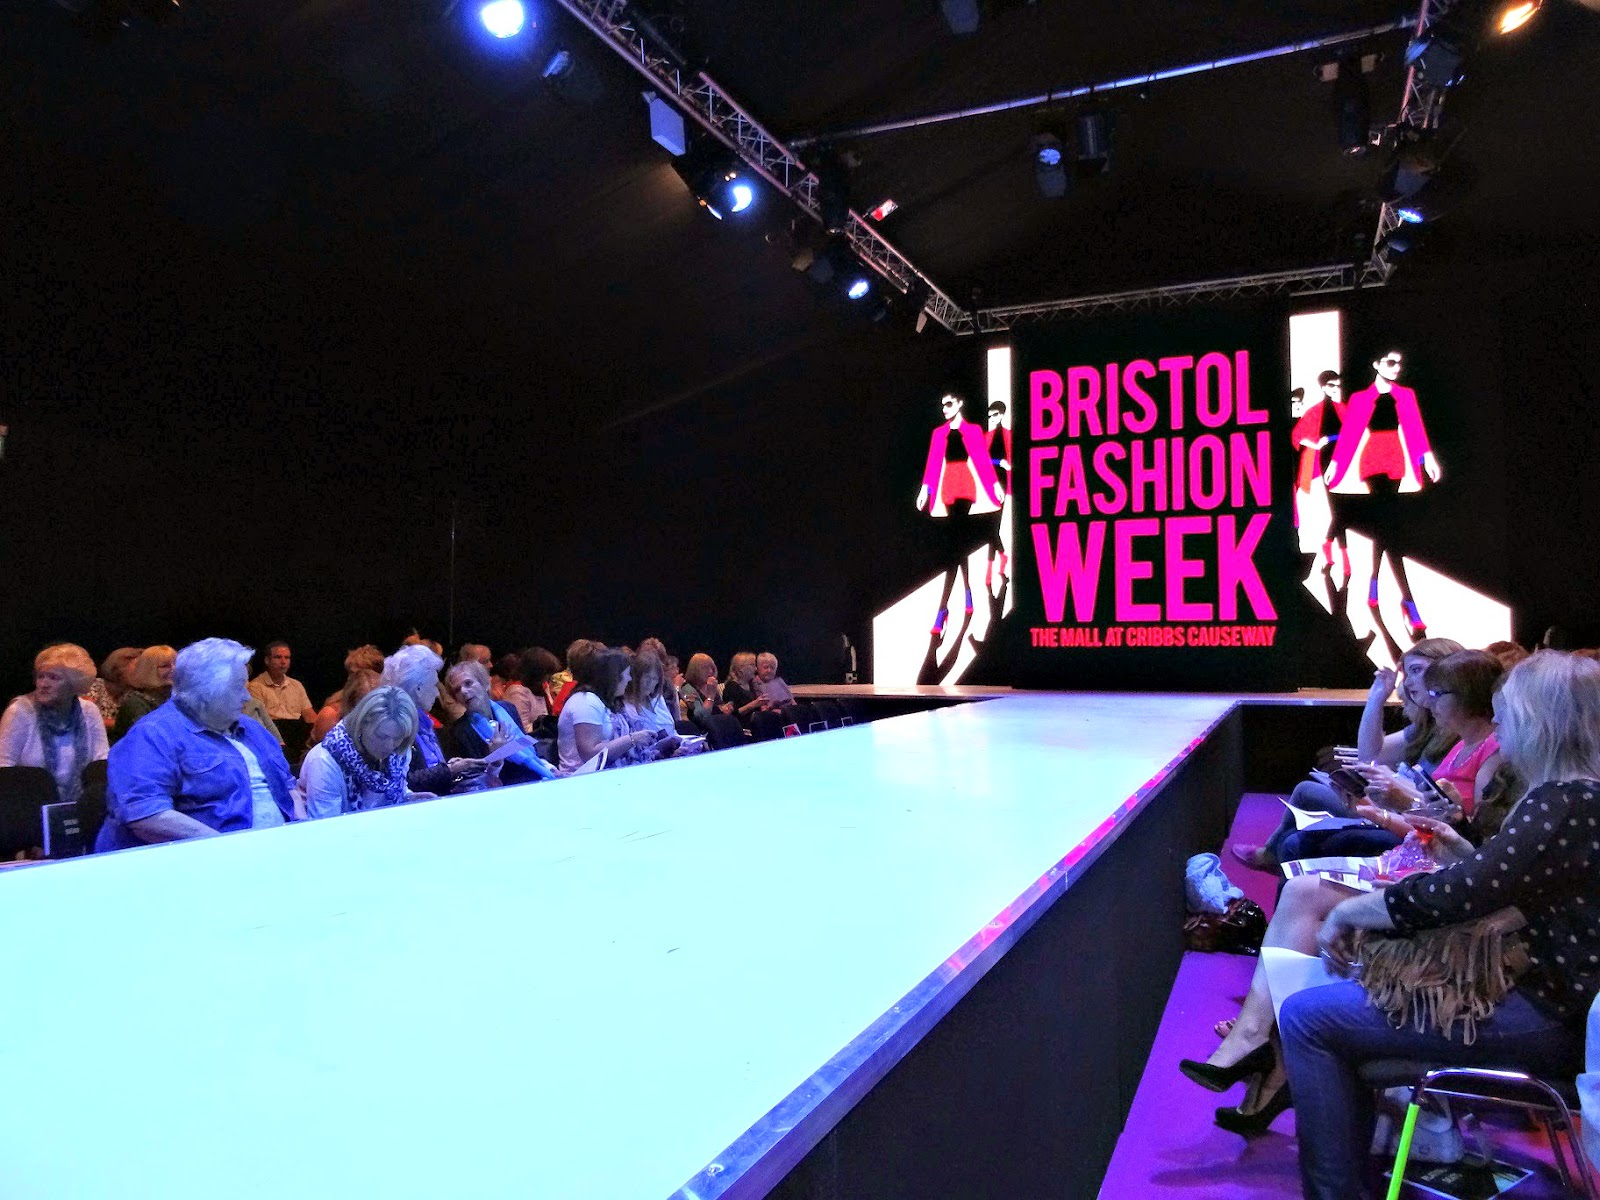 The runway at Bristol Fashion Week